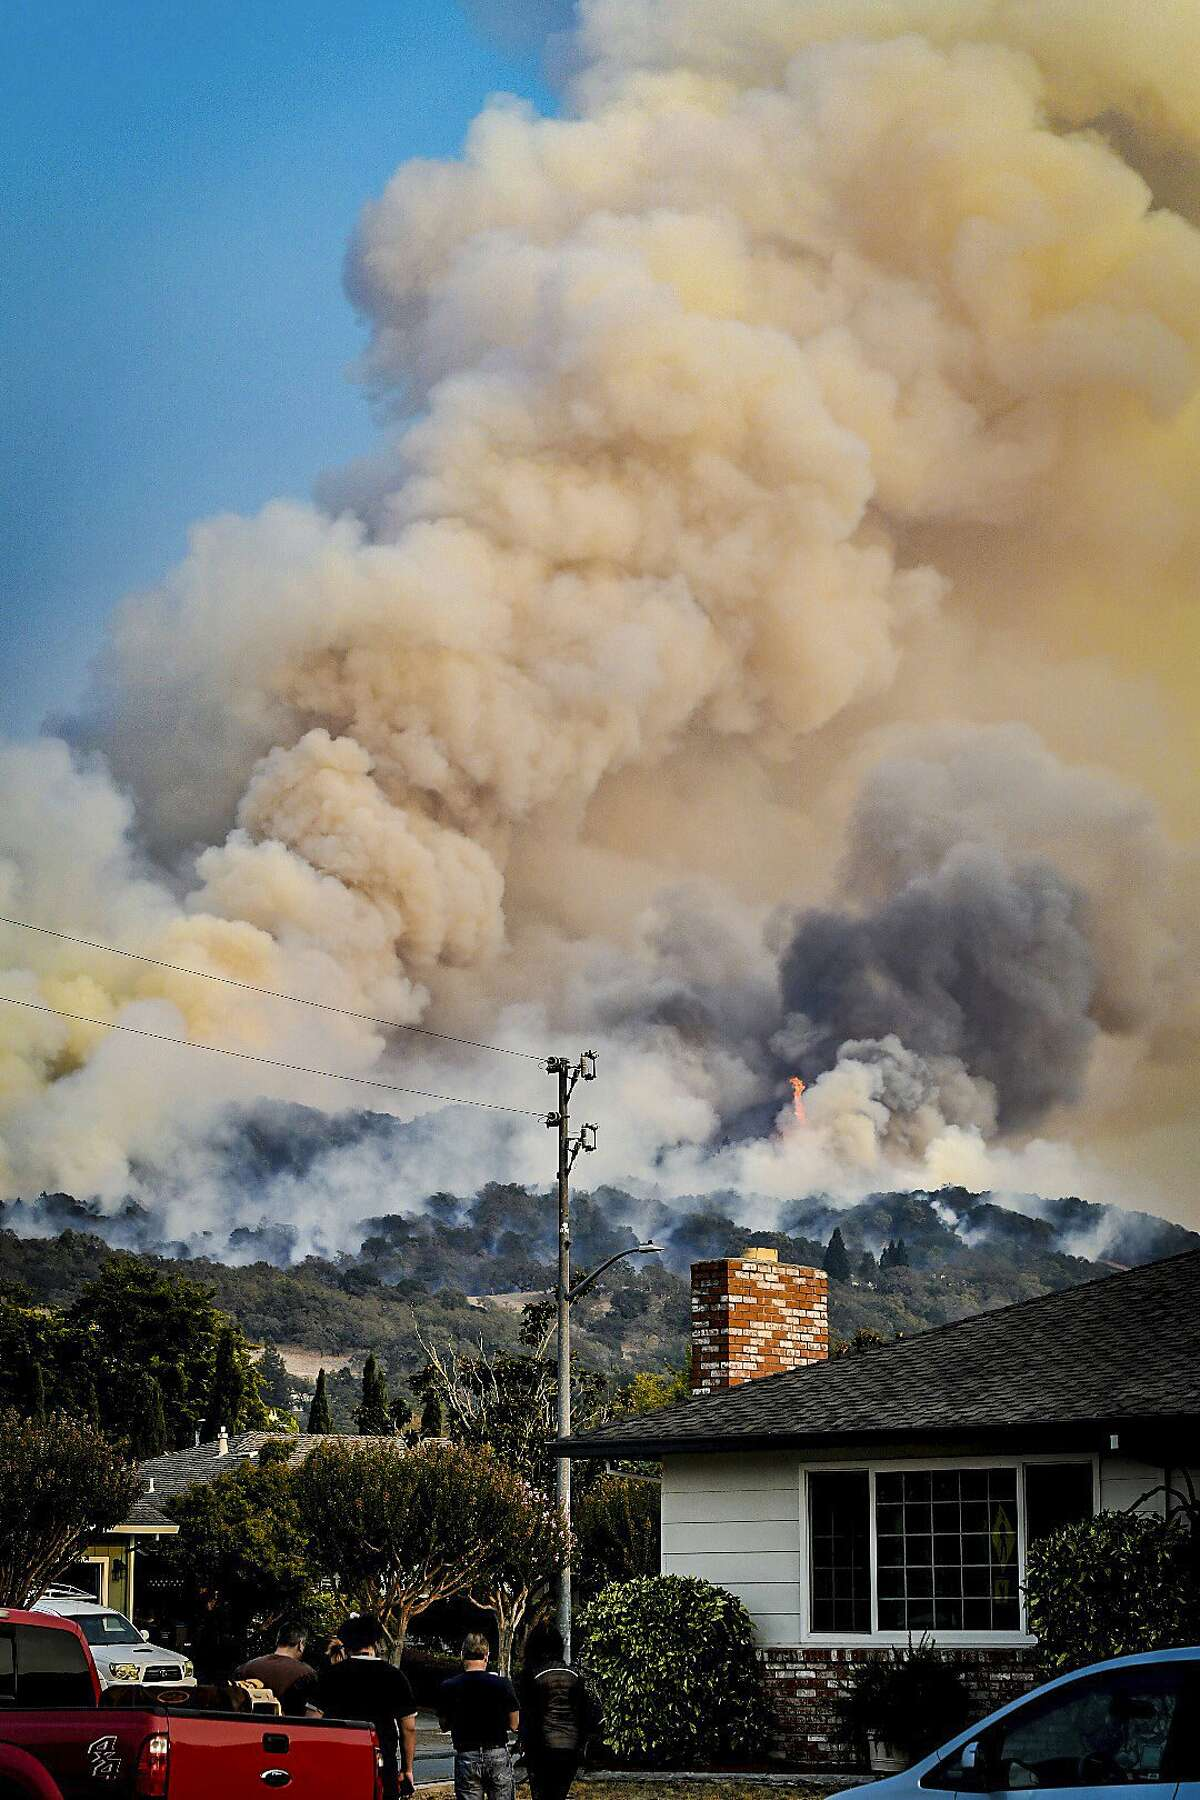 In this Oct. 11, 2017 photo, smoke rises from fires in Santa Rosa, Calif. Gusting winds and dry air forecast for Thursday, Oct. 12, could drive the next wave of devastating wildfires that are already well on their way to becoming the deadliest and most destructive in California history. (Derek Anderson via AP)